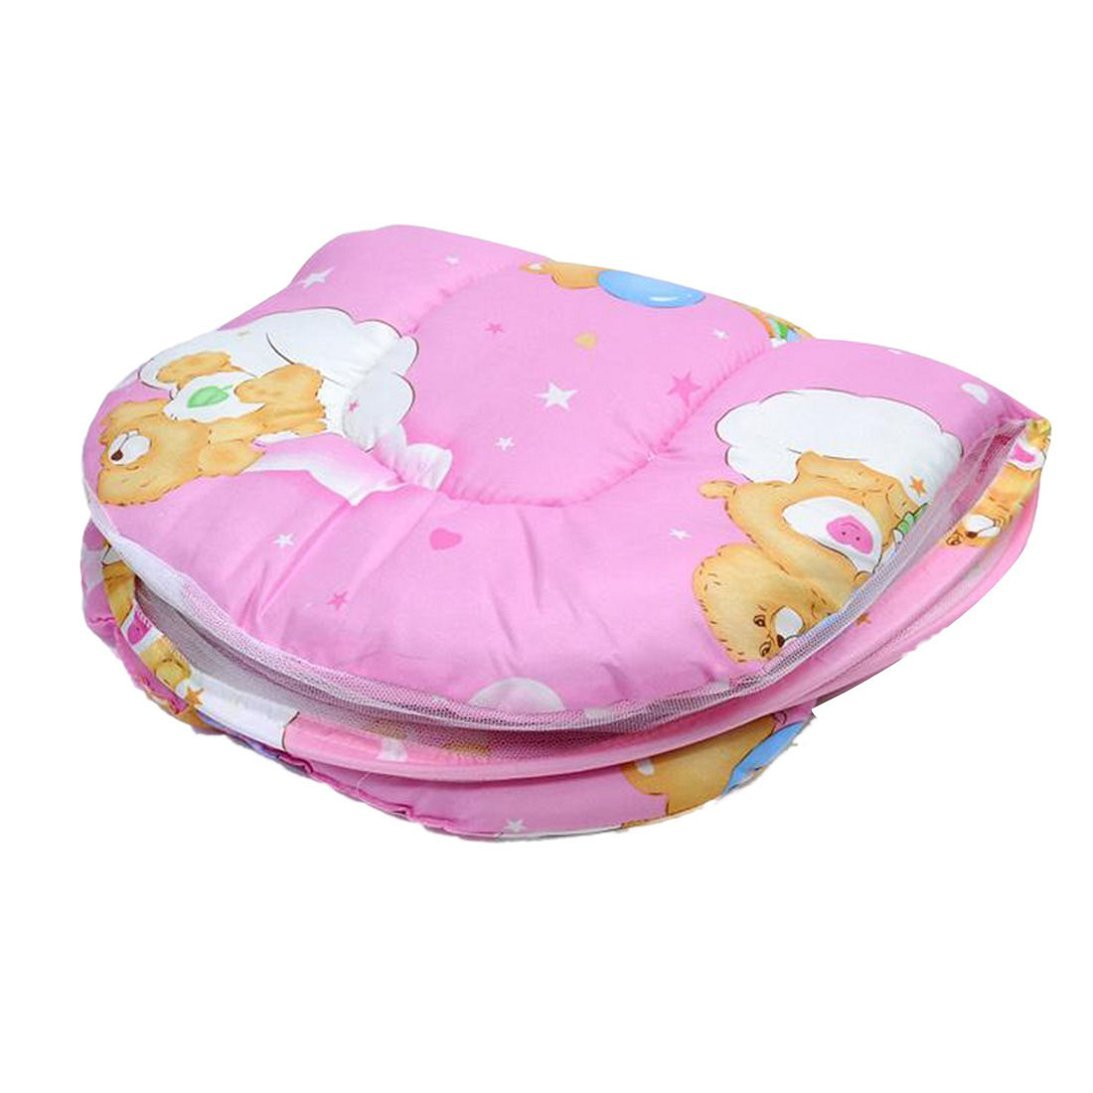 Sunward Hot! Baby Bed Mosquito Net with Cushion Portable Folding Crib Mattress (Pink) by Sunward (Image #3)